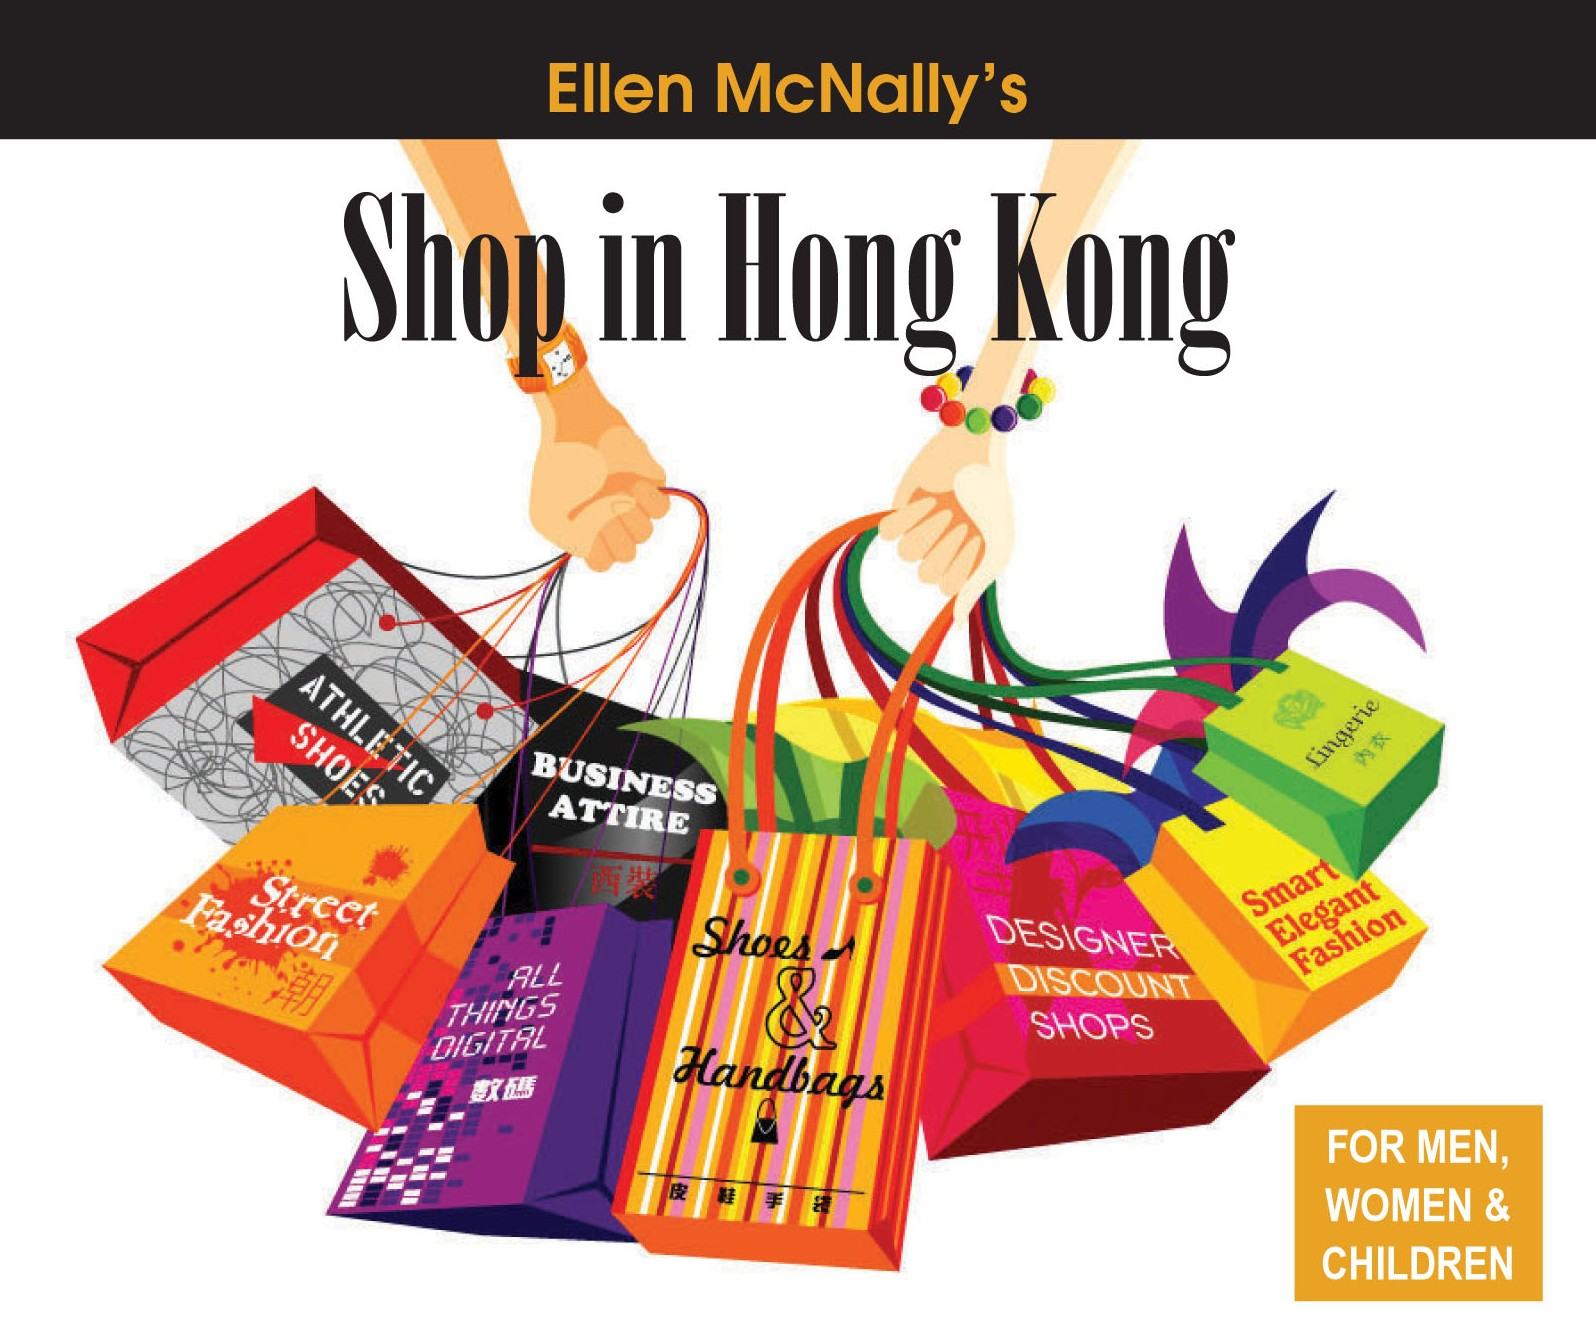 ellen 39 s shopping news hong kong 39 s luxury designer discount outlets. Black Bedroom Furniture Sets. Home Design Ideas